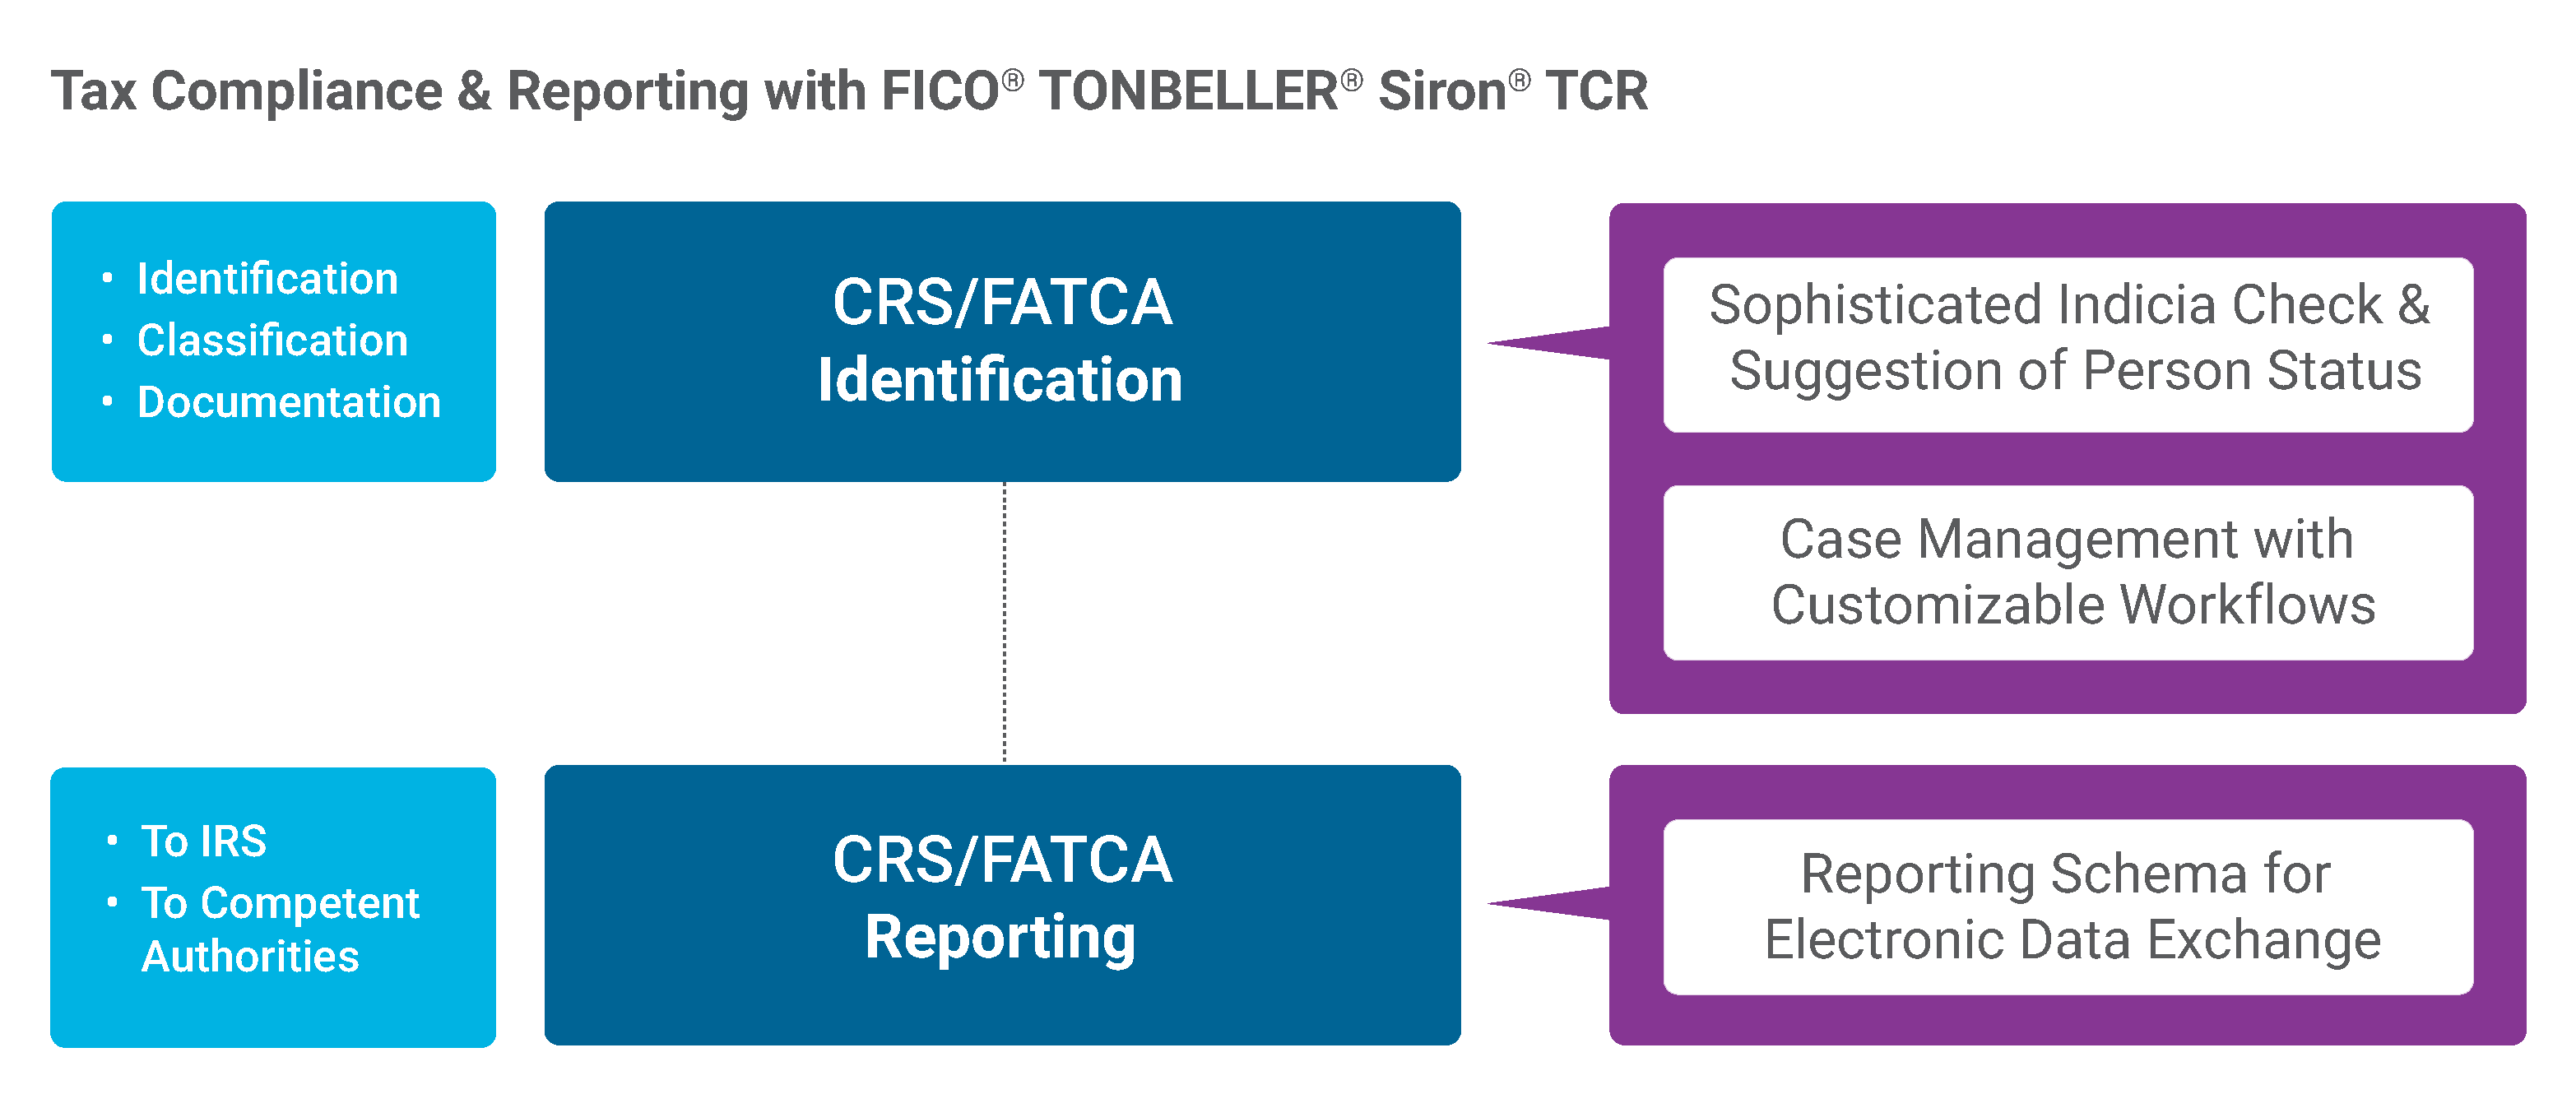 CRS & FATCA identification, classification and reporting